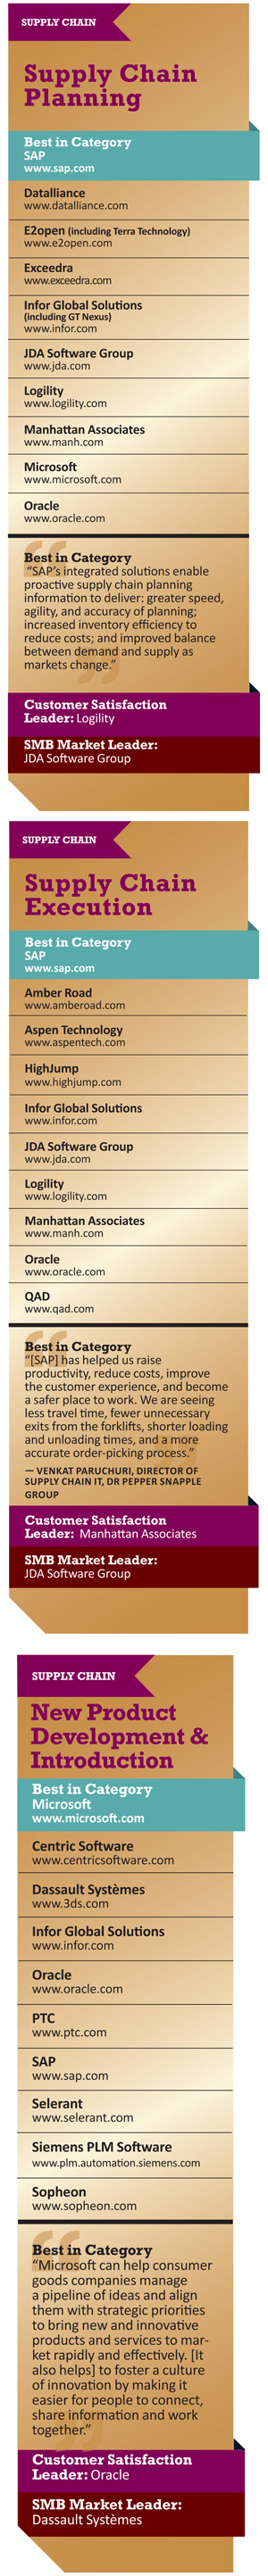 Supply Chain Categories